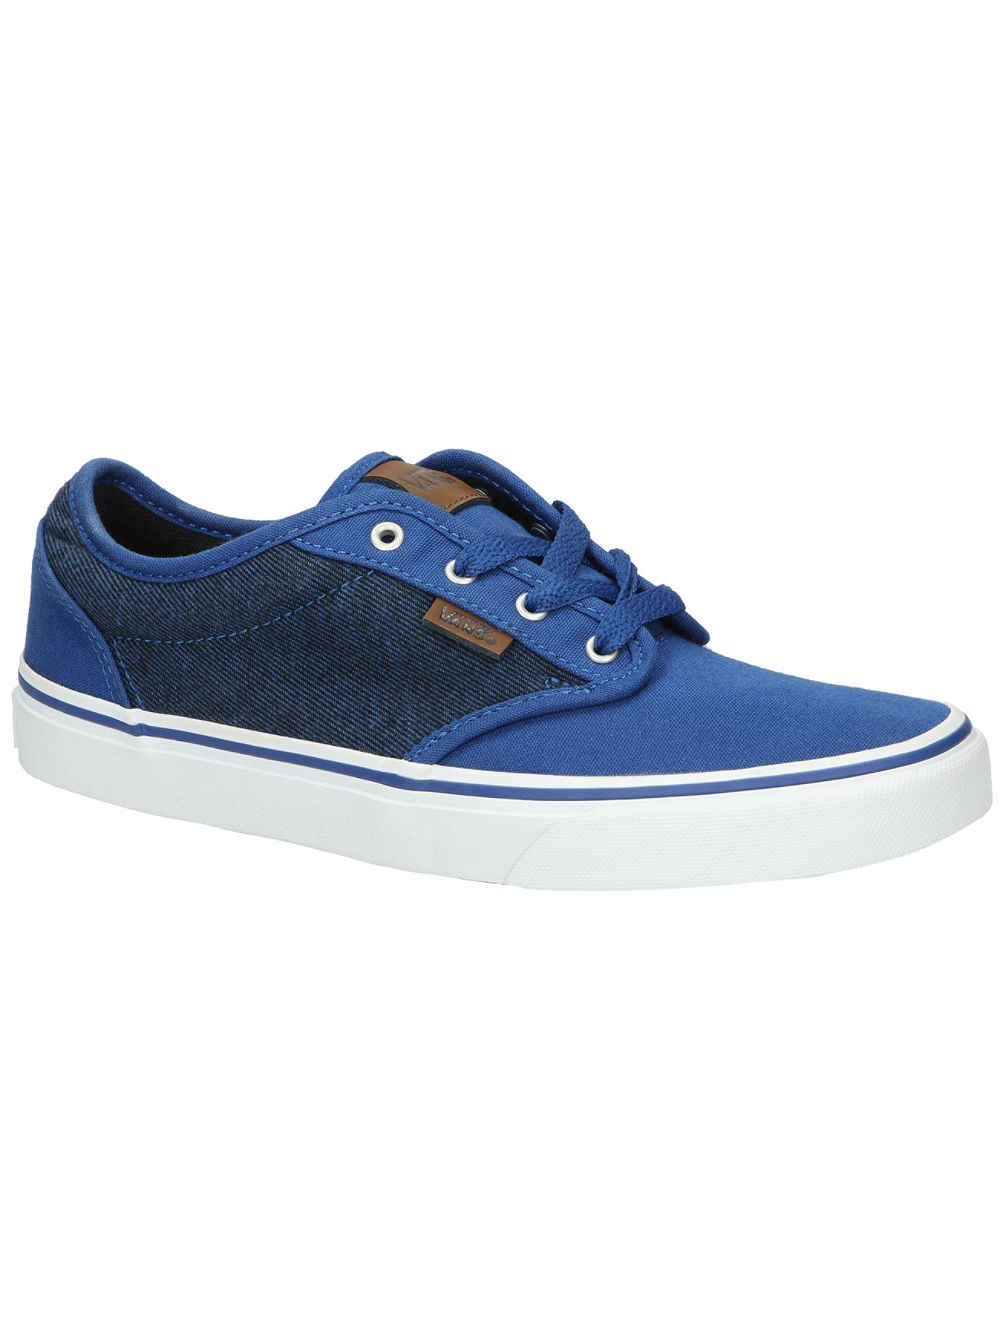 Atwood Sneakers Boys